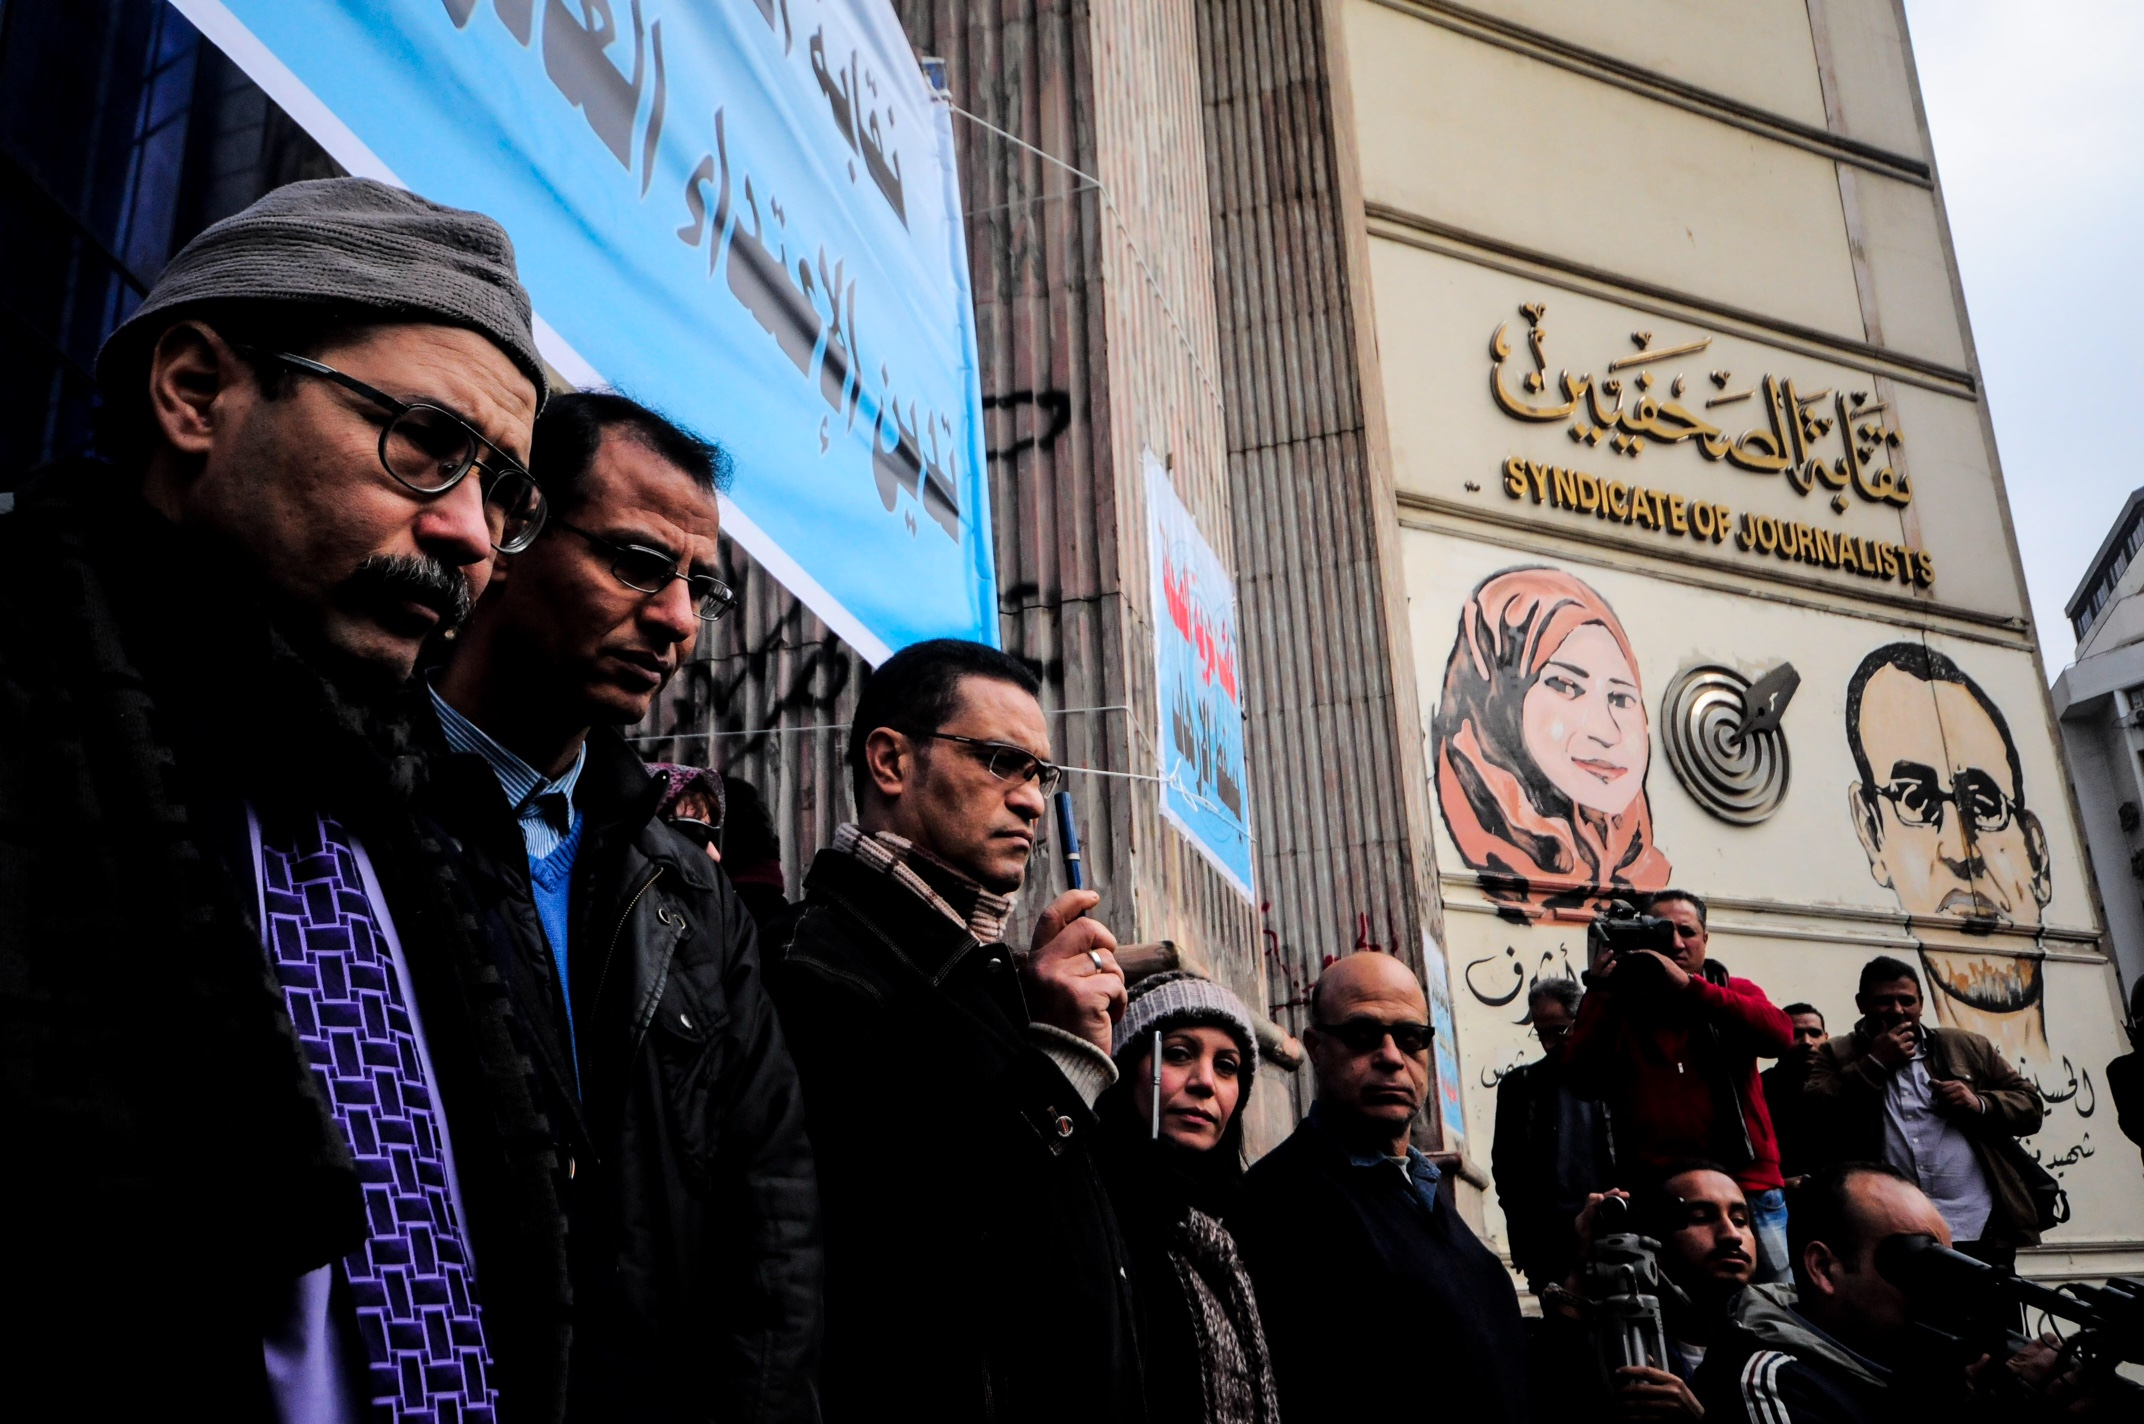 Approximately 60 leading journalists and editors from Egypt's mainstream media outlets demonstrated against the attacks on French magazine Charlie Hebdo, outside Cairo's Press Syndicate Sunday. (Photo Credit: Mahmoud Abou El Dahab/Daily News Egypt)